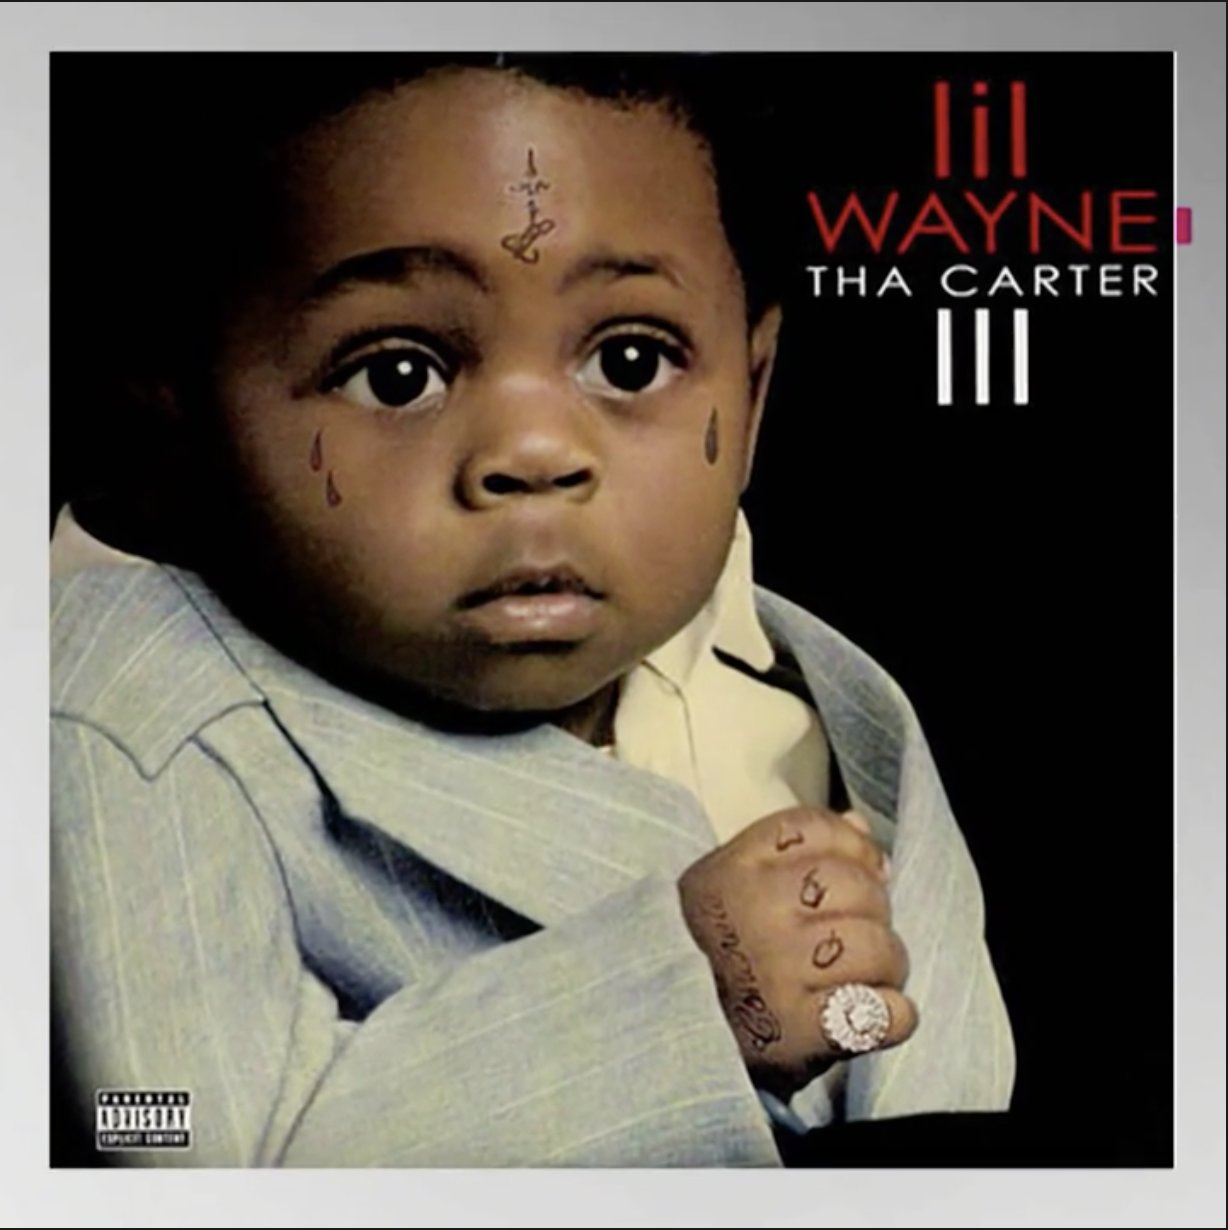 The 10th anniversary of @LilTunechi's 'Tha Carter III' is approaching! #BETBreaks https://t.co/wkGGq0n44d